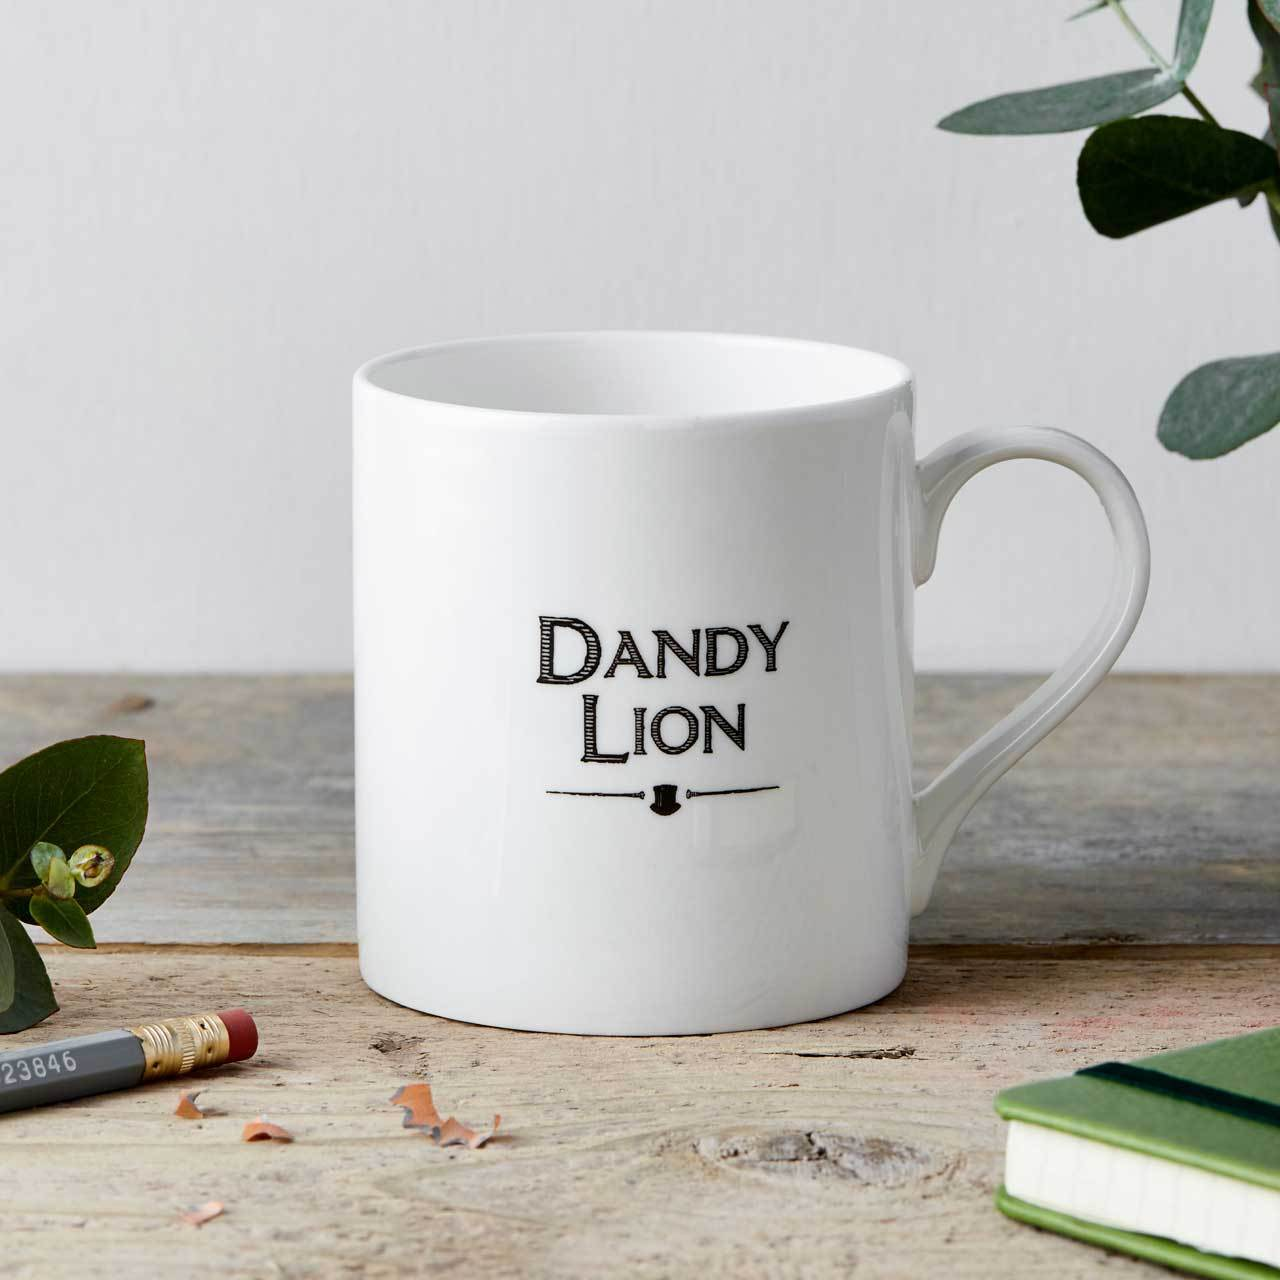 Dandy Lion Fine China Mug